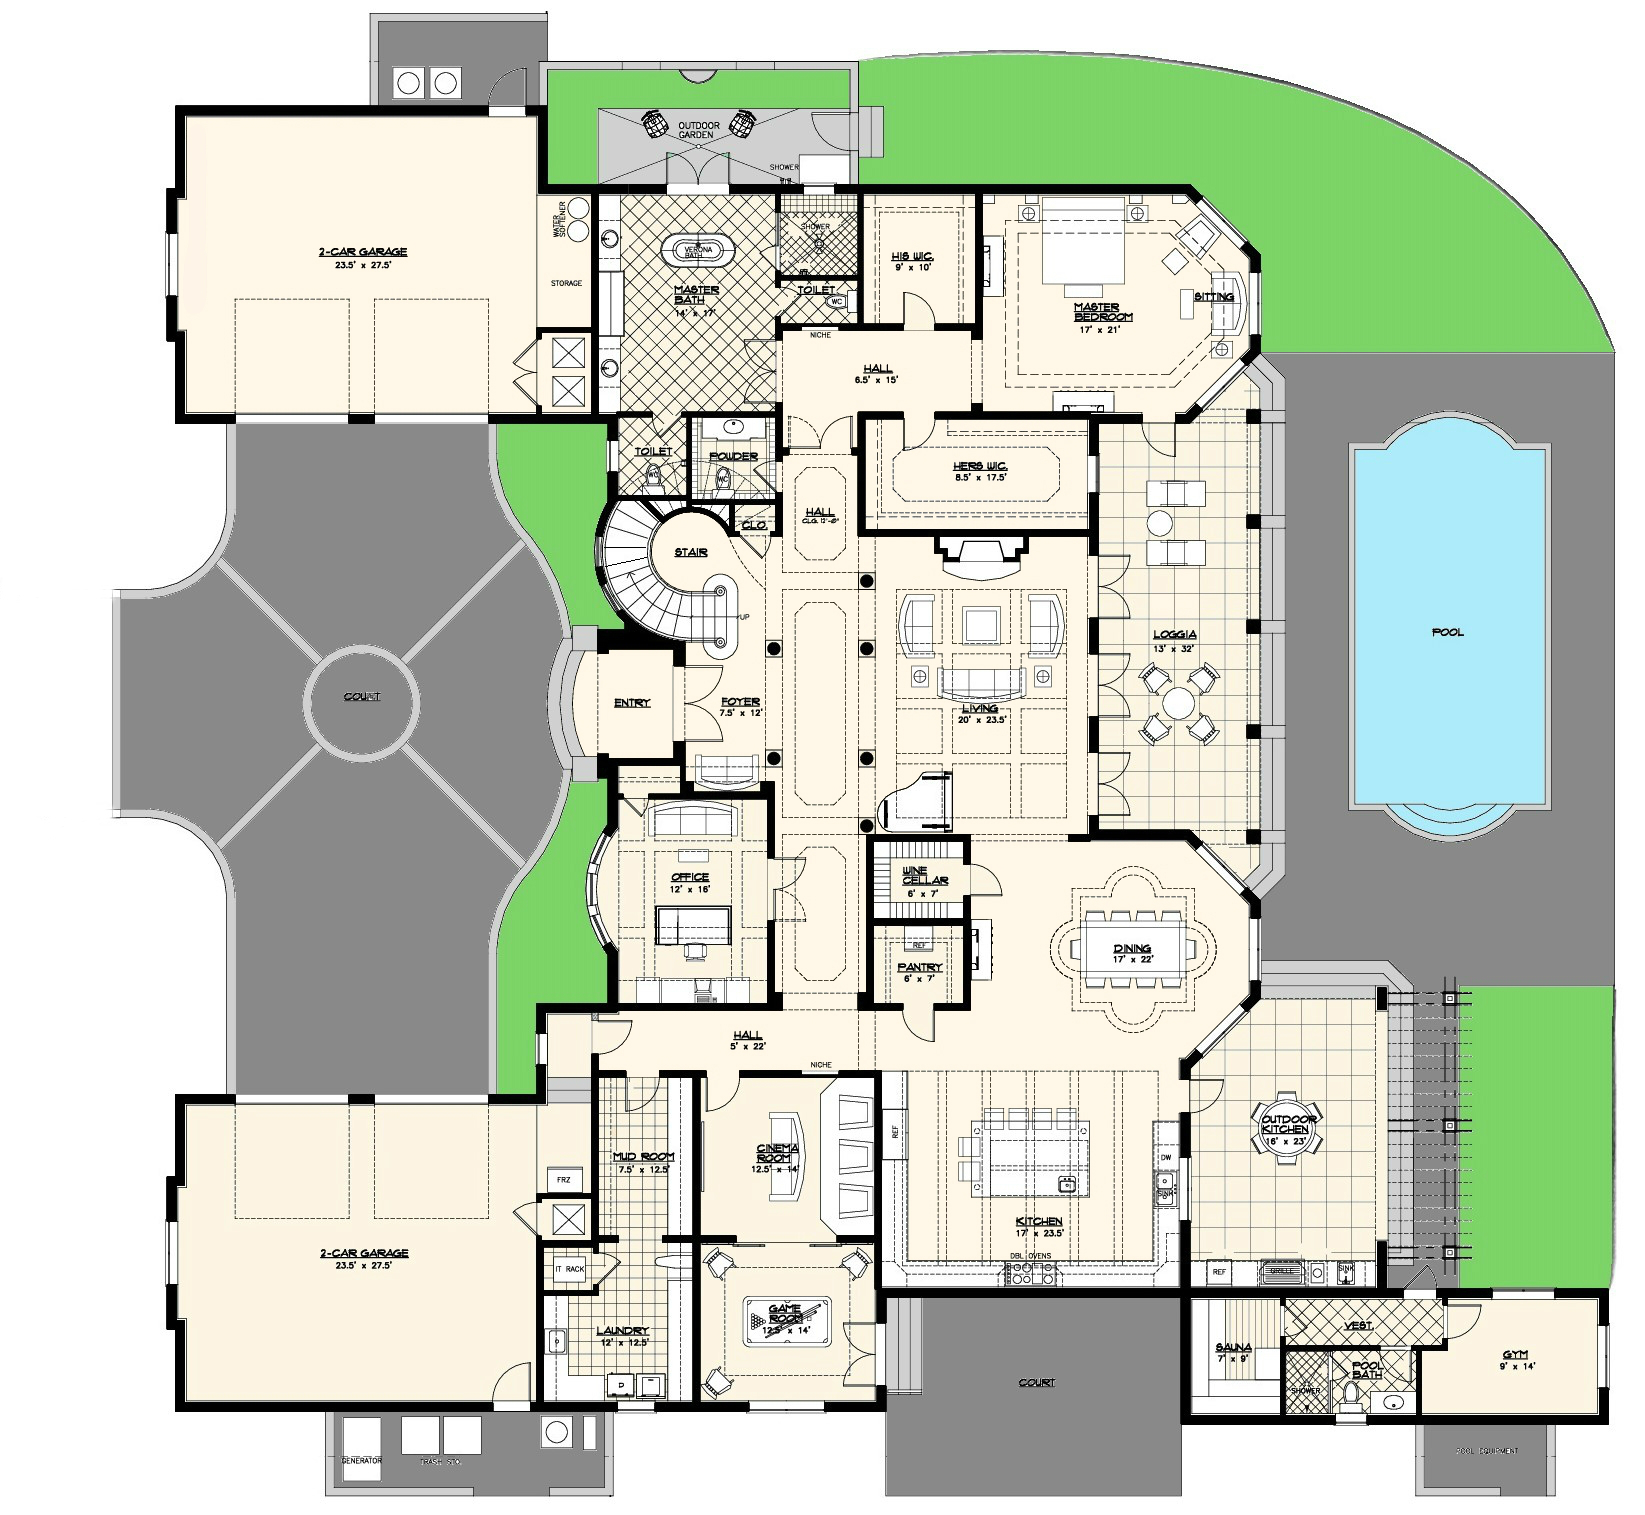 Luxury villas floor plans Plans for villas